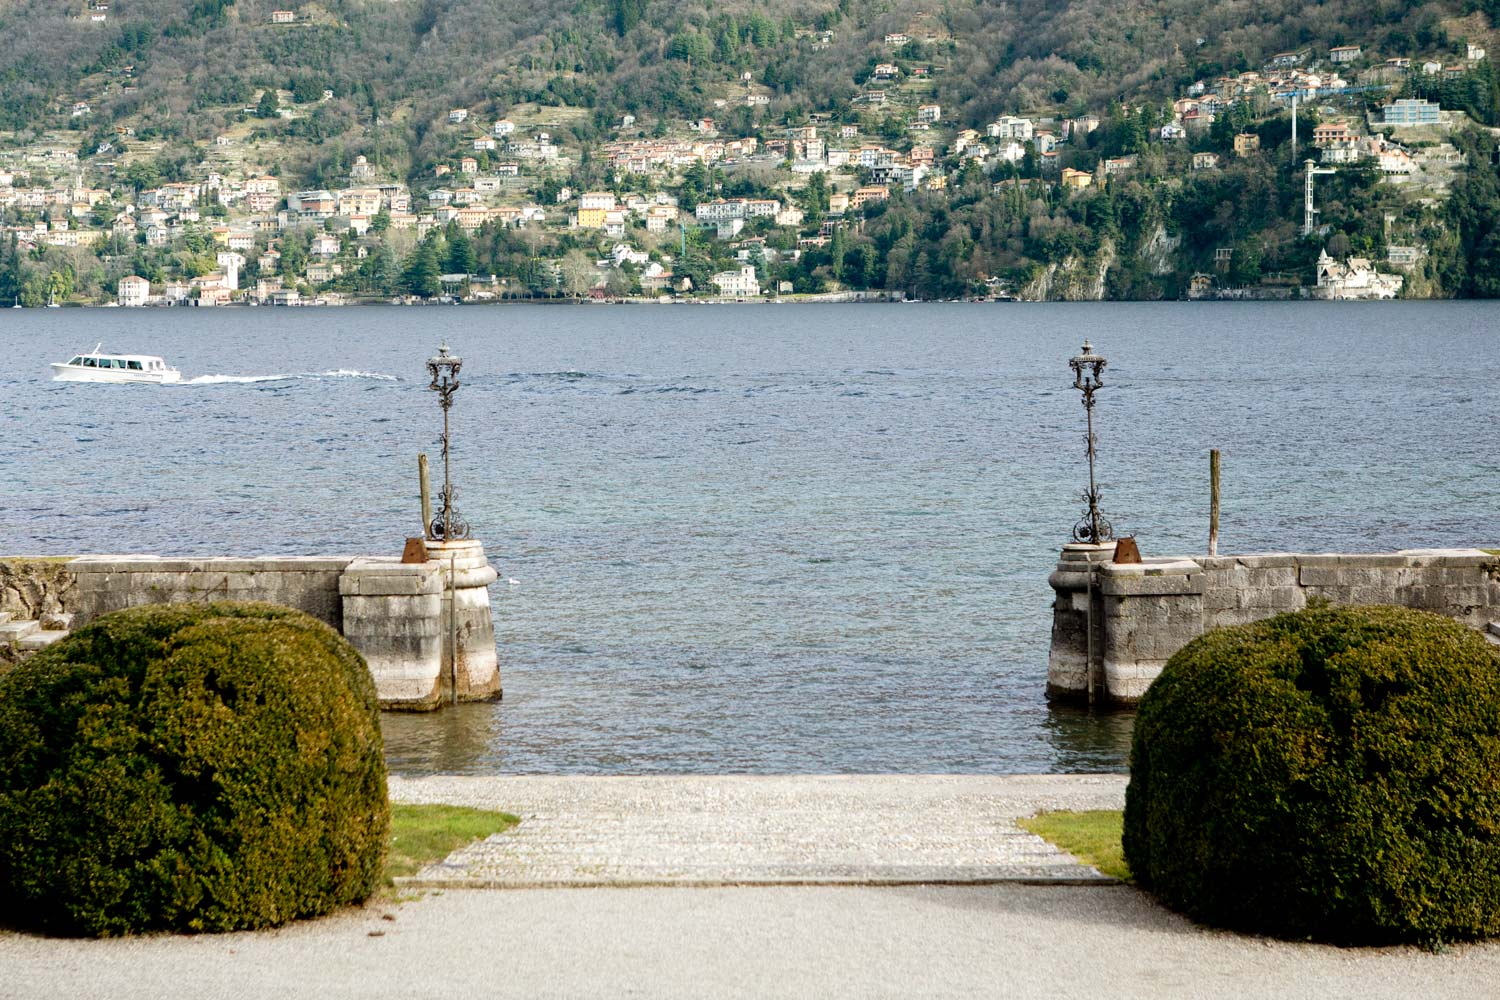 Villa Erba Wedding - Lake Como Wedding Venues - Como in Style